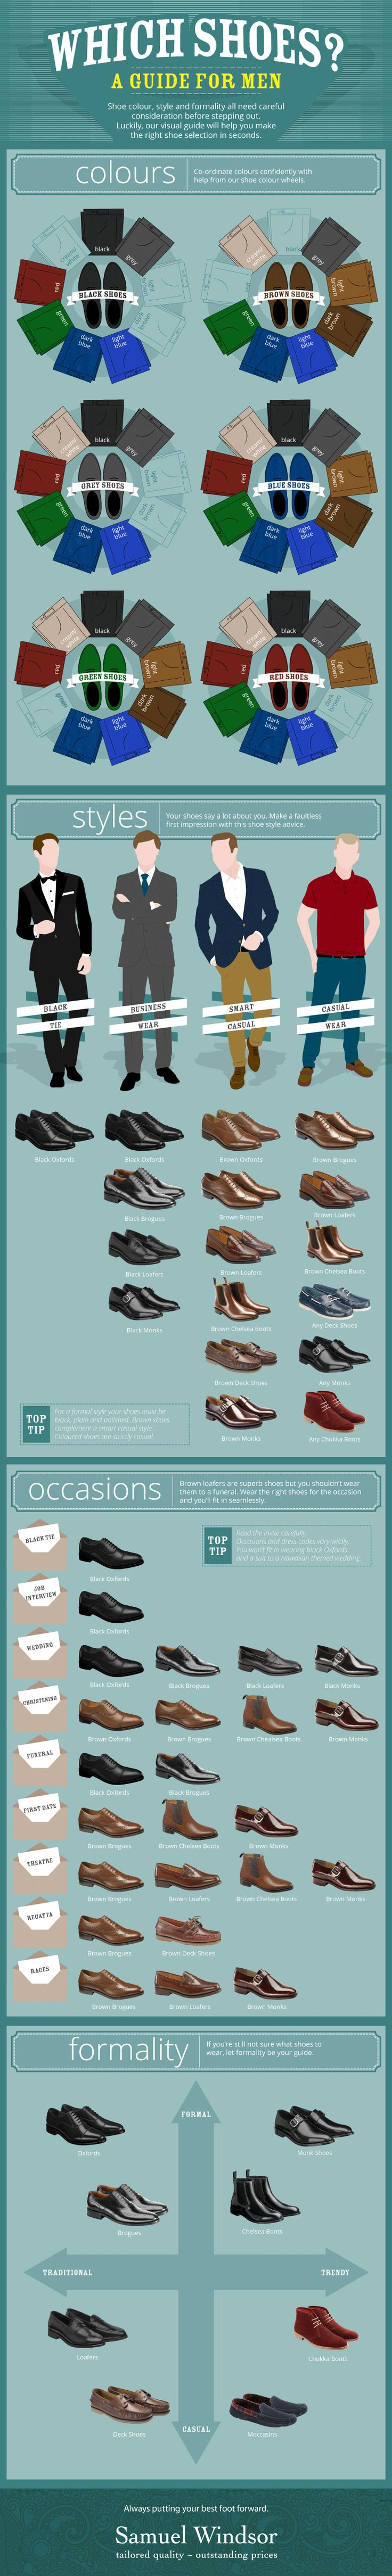 17 best images about dress for success men men s a guide for men infographic